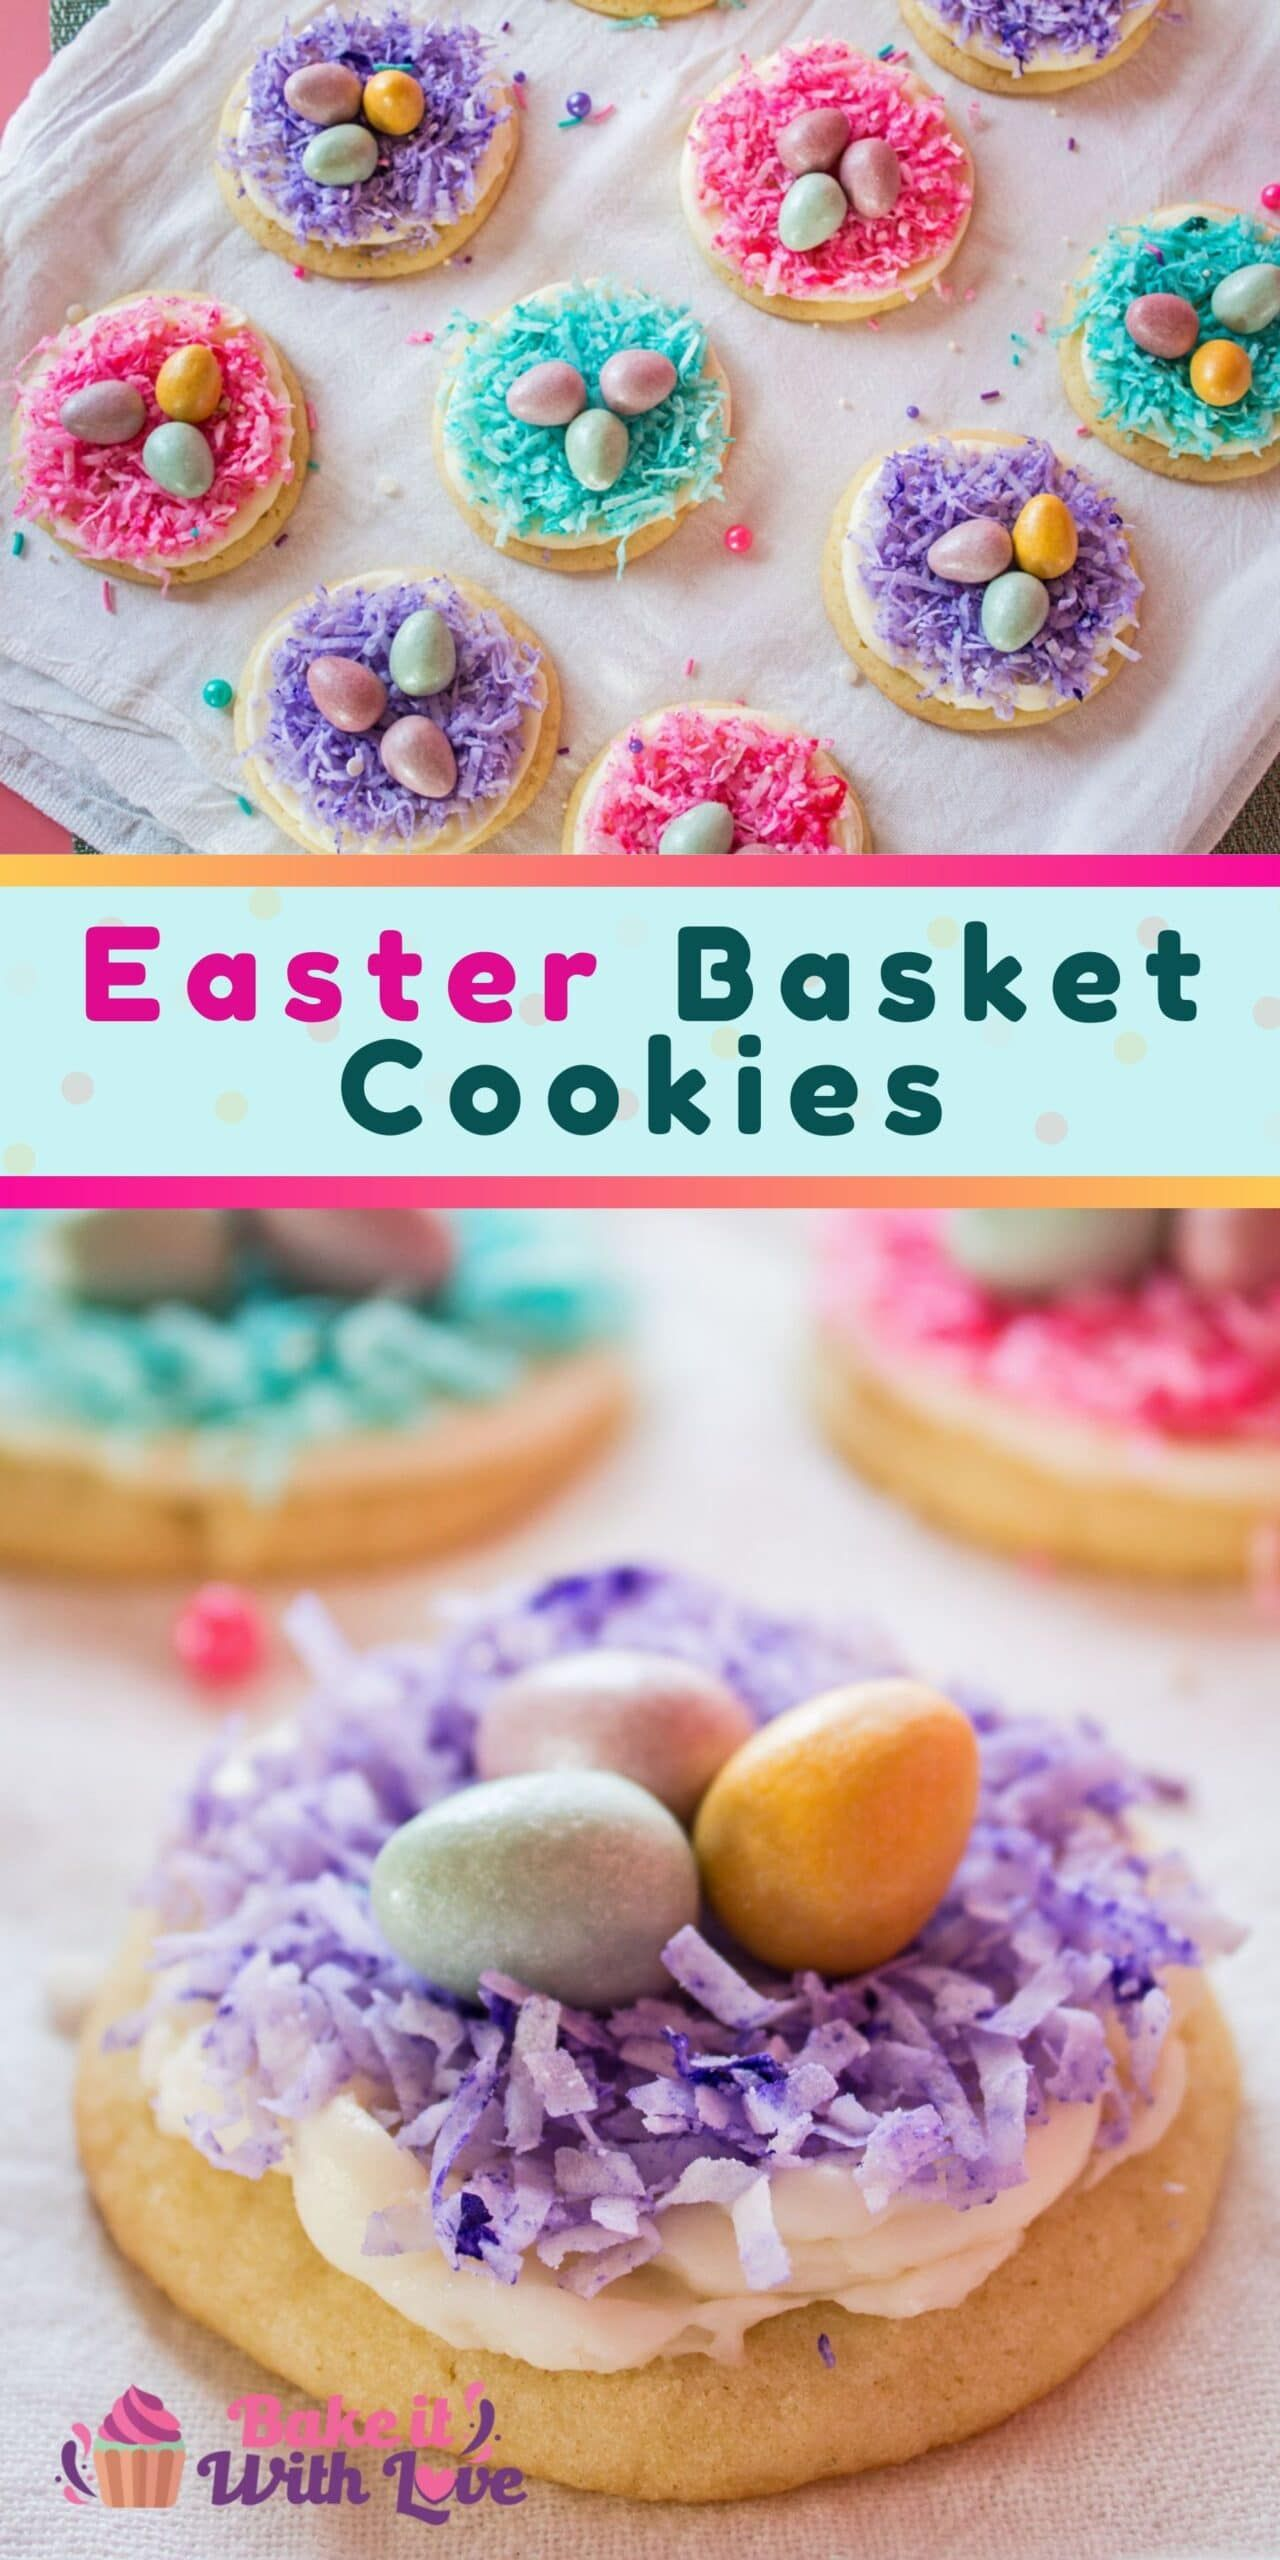 Easter Basket Cookies @ Bake It With Love | Recipe in 2021 ...